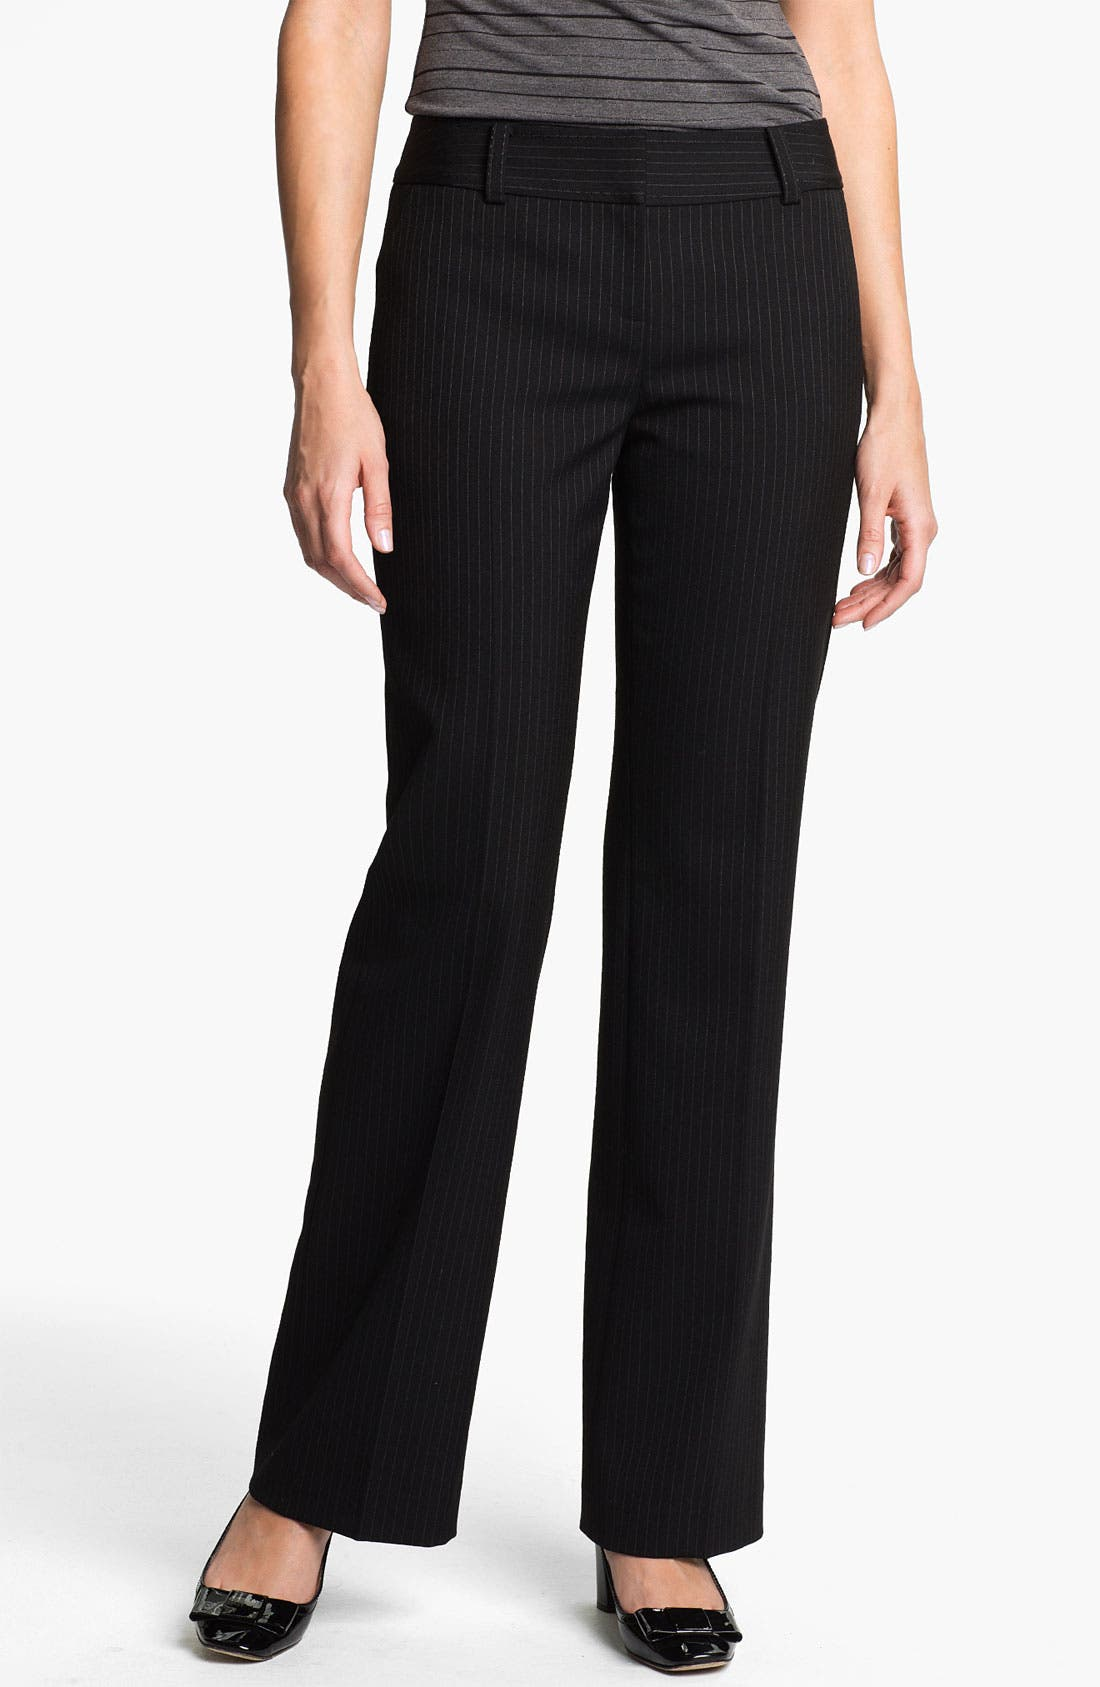 Alternate Image 1 Selected - Halogen® 'Taylor' Curvy Fit Pinstripe Pants